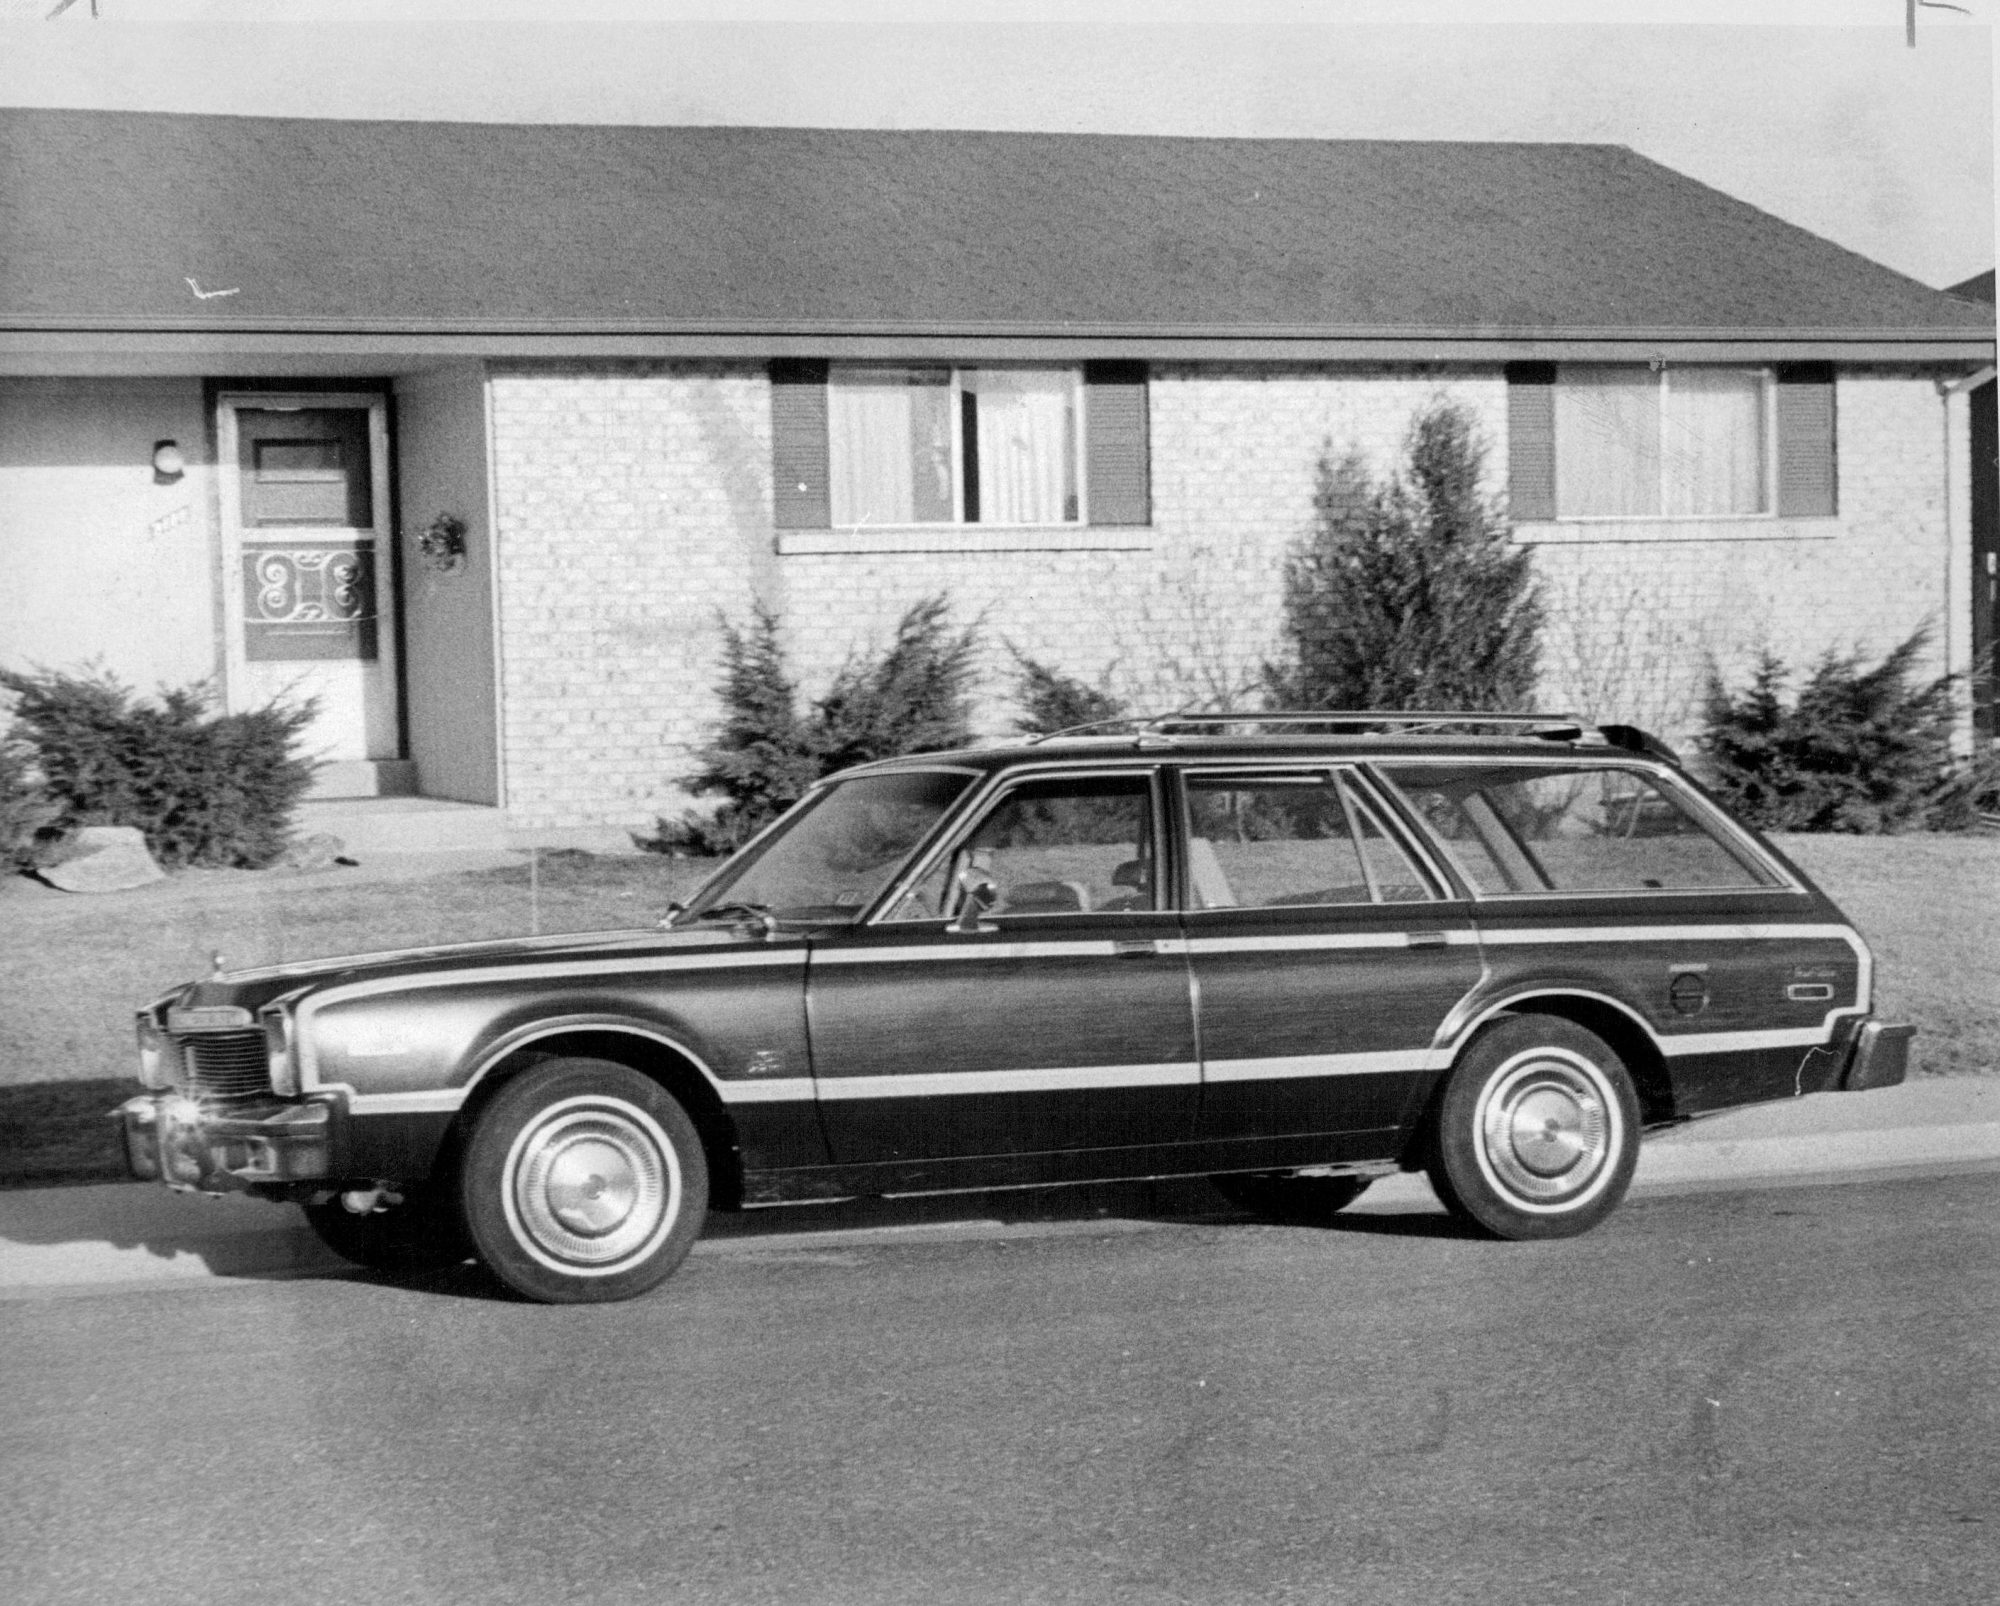 Vintage station wagon in front of house